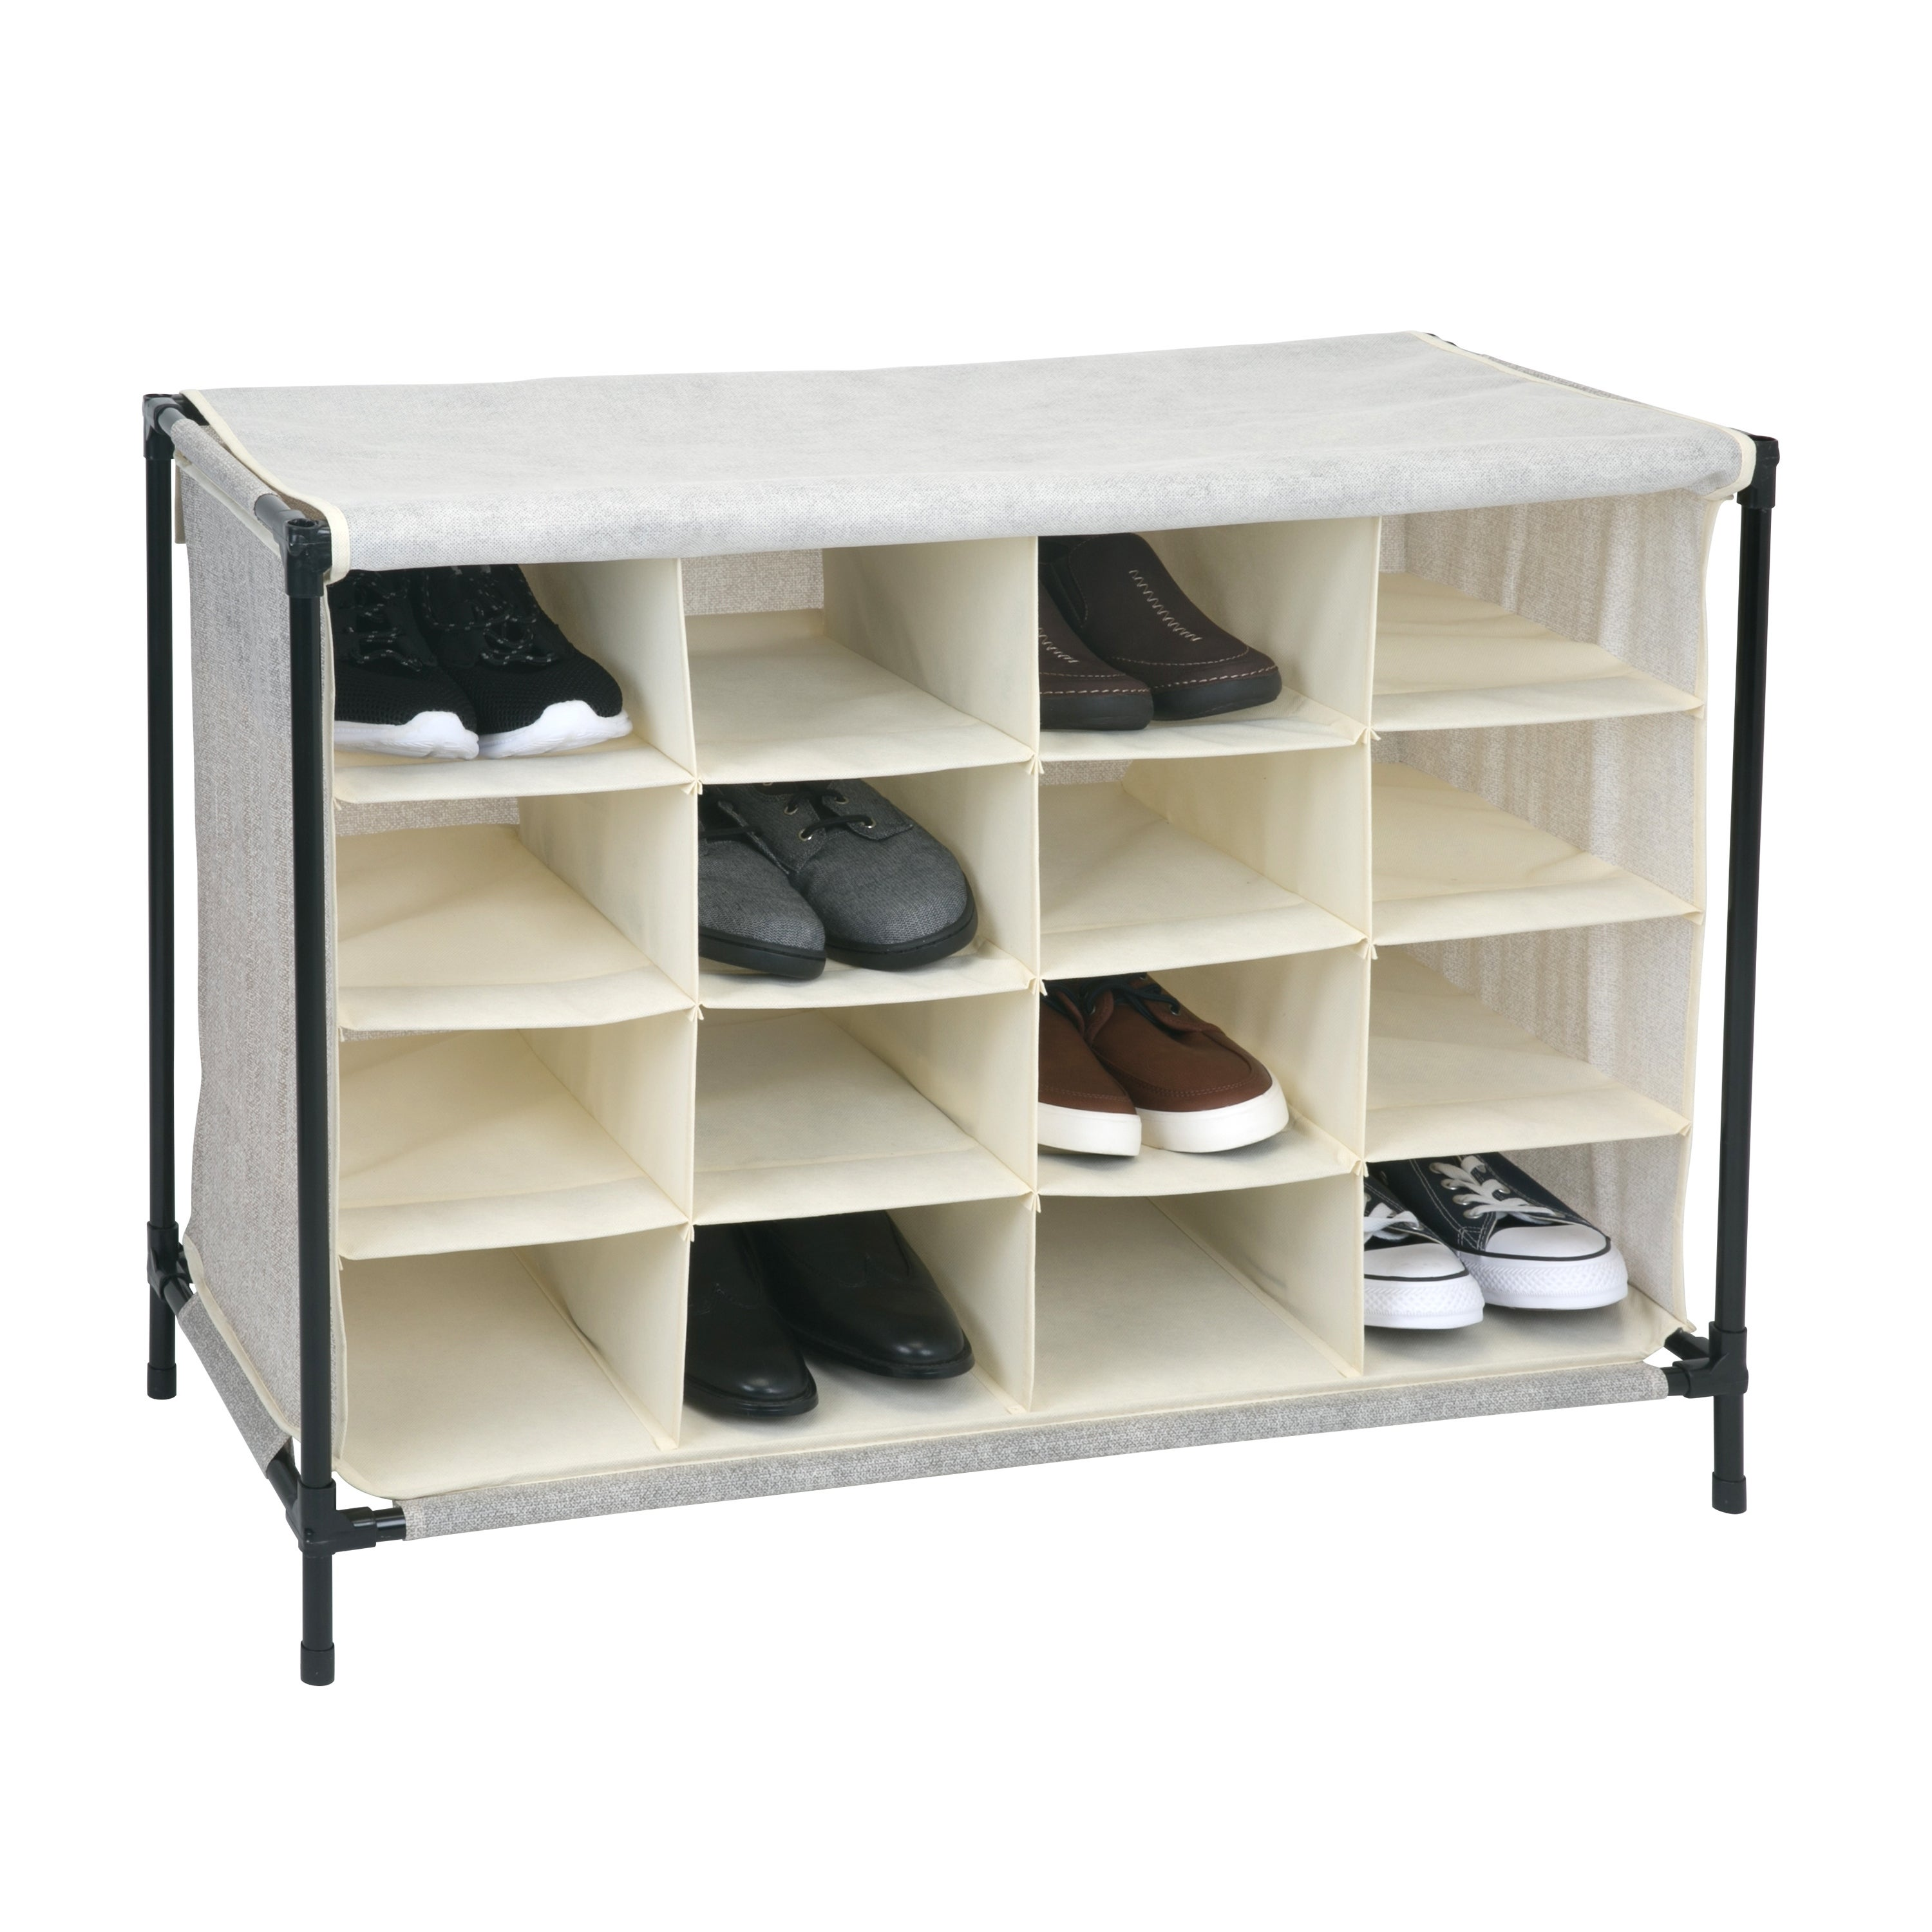 Shop 16 Compartment Shoe Cubby Organizer W/Cover   Fej   Free Shipping On  Orders Over $45   Overstock.com   20563405